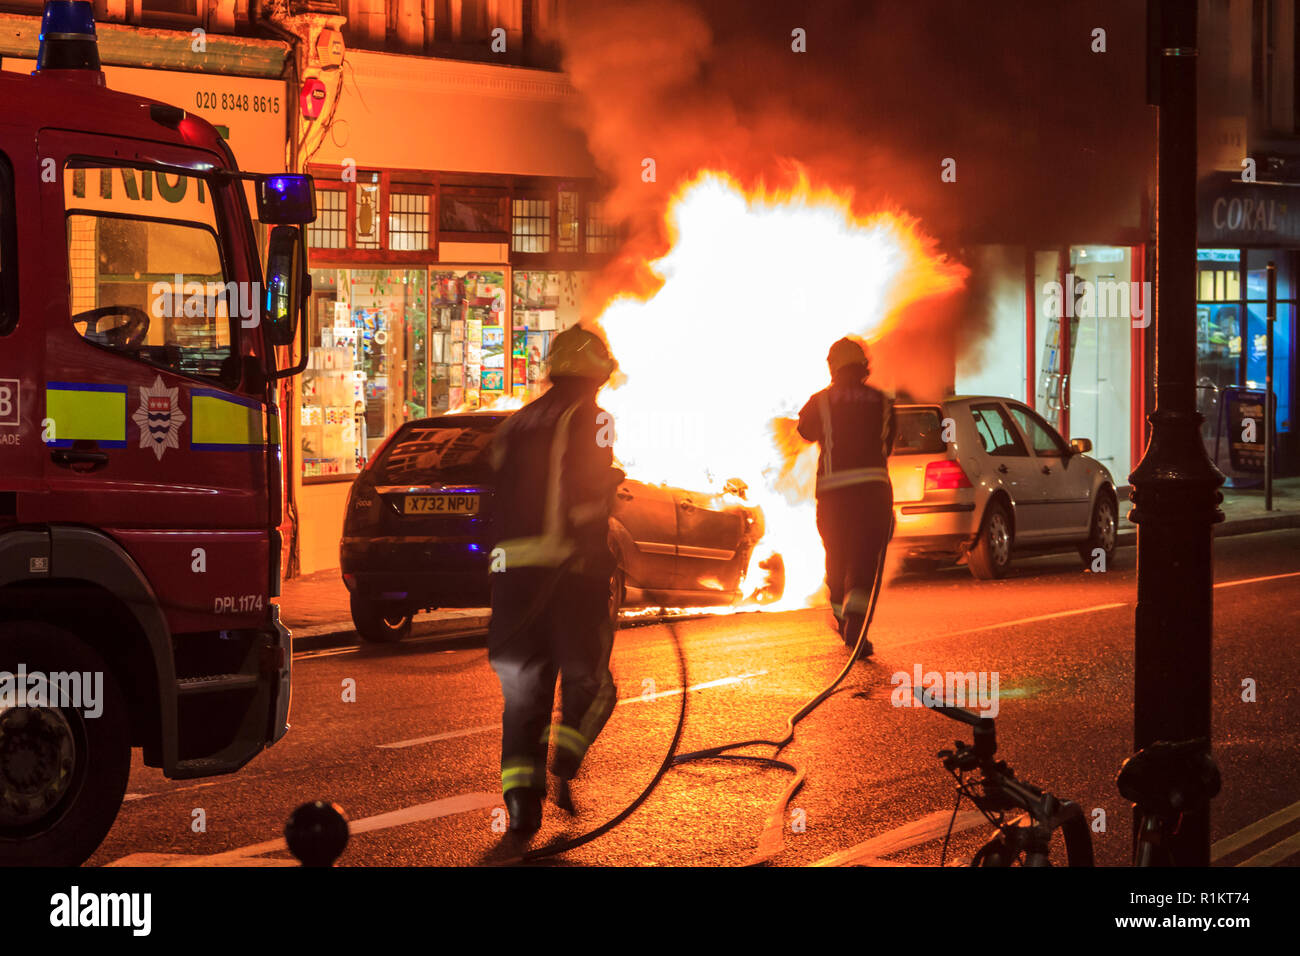 London Fire Brigade officers tackle a vehicle fire in Crouch End, North London, UK, November 2012 - Stock Image